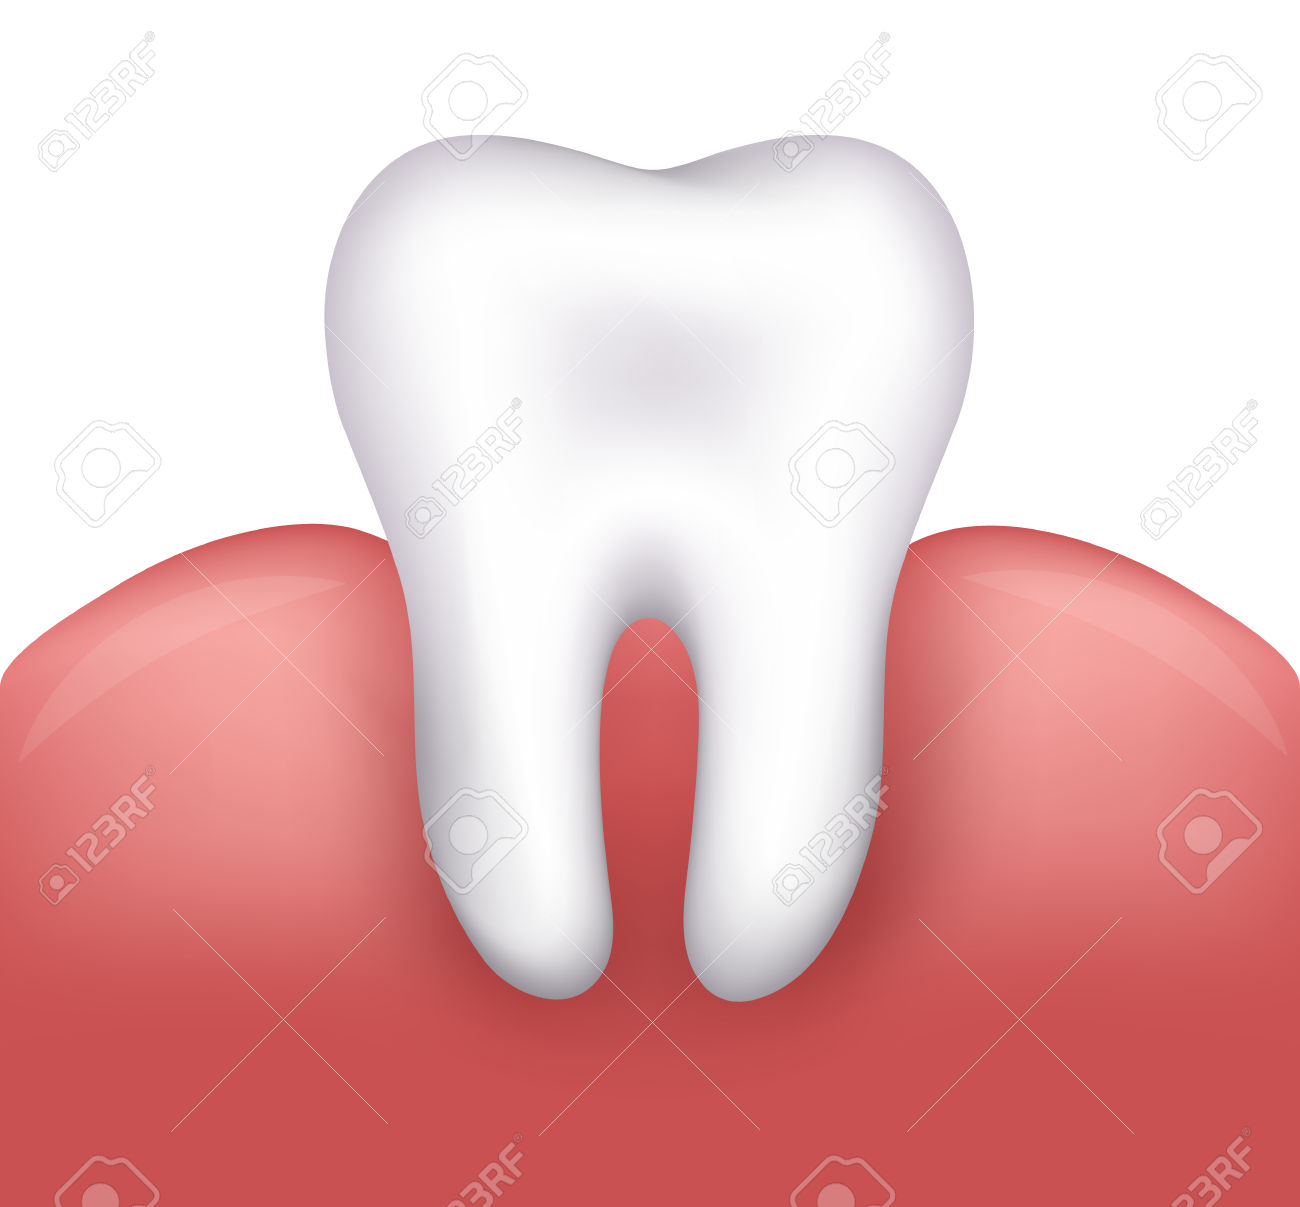 Beautiful Healthy Tooth And Gums Dental Illustration Royalty Free.